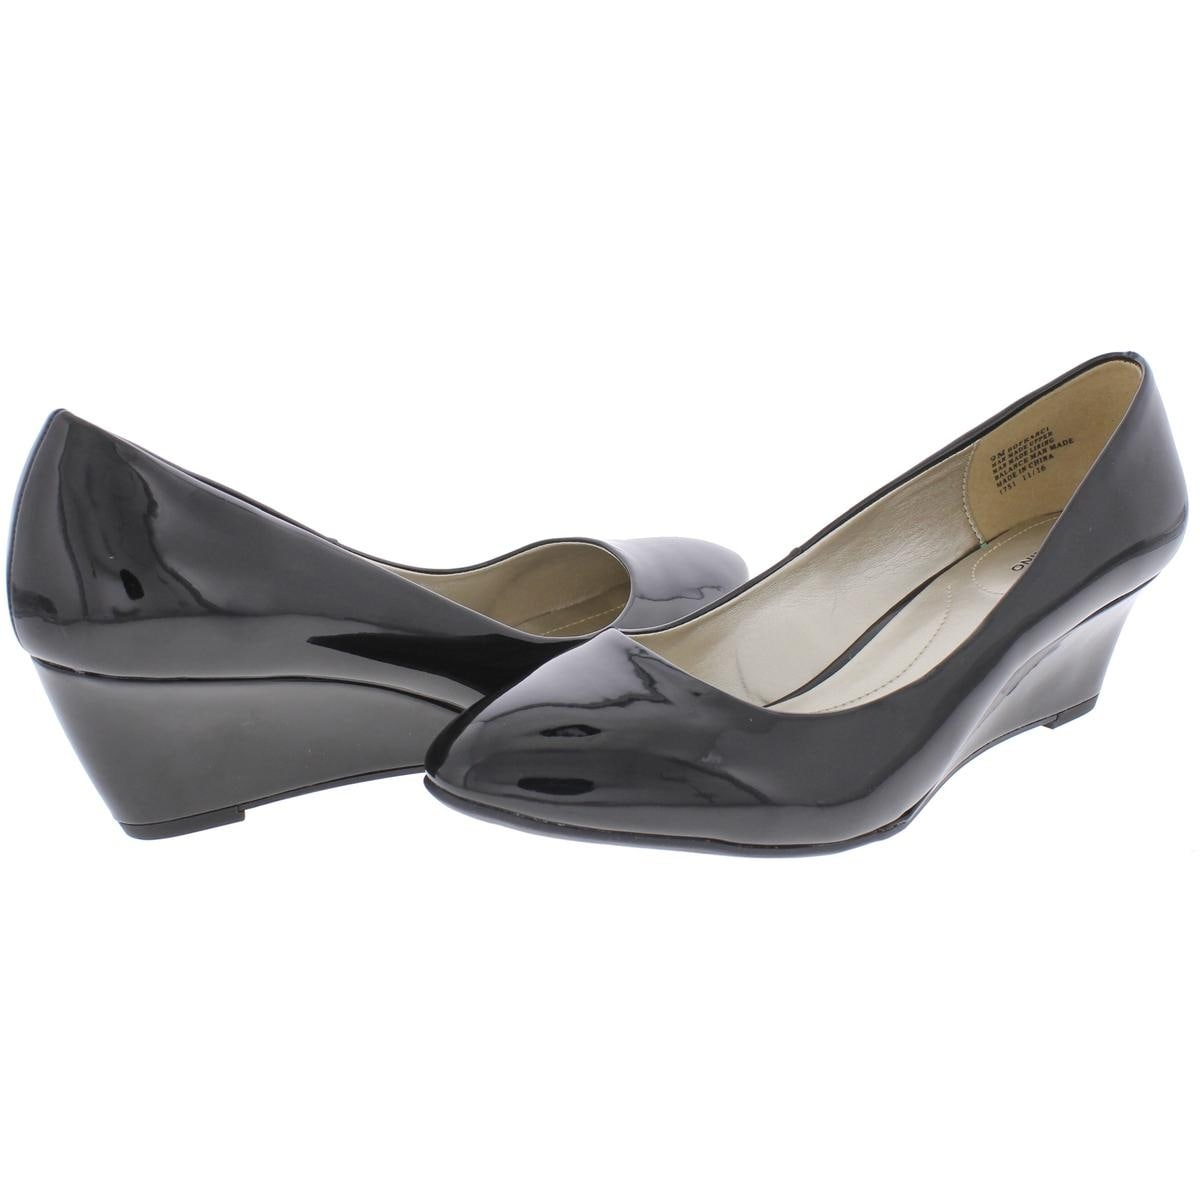 eac6e66d05b Shop Bandolino Womens Franci Wedge Heels Round Toe - Free Shipping On  Orders Over  45 - Overstock - 20982907